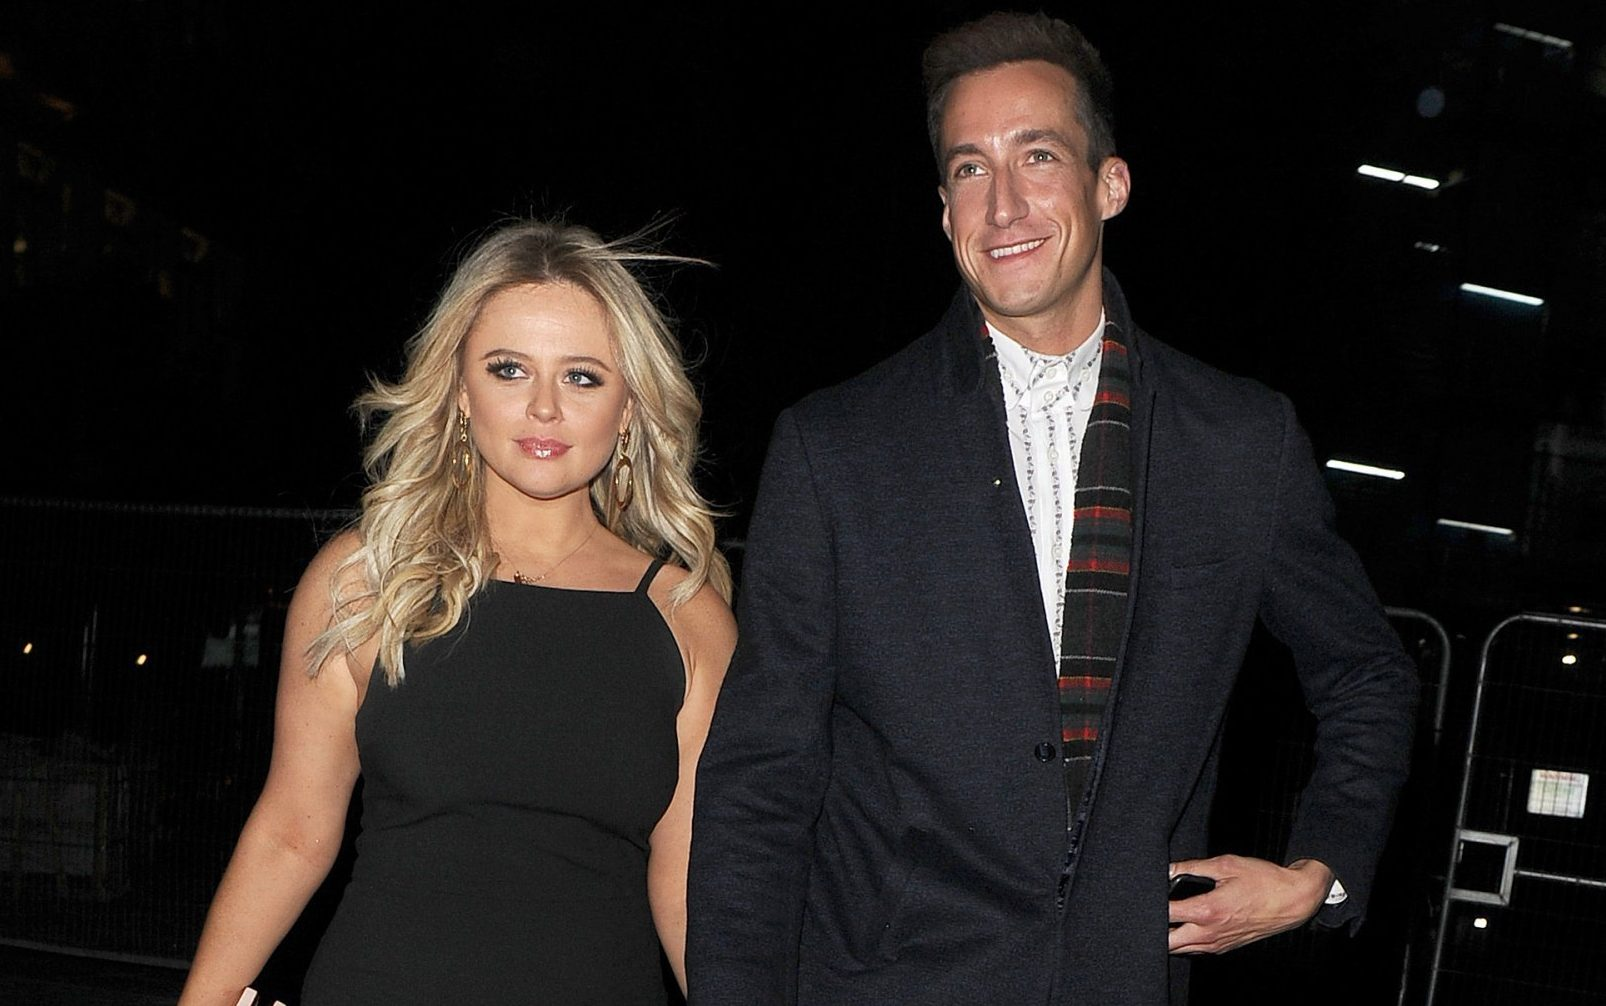 Emily Atack is seen for the first time, with her new boyfriend Rob Jowers. The pair walked hand in hand, as they left Vivi restaurant in the West End, having attended a friends birthday party. 13 Apr 2019 Pictured: Emily Atack, Rob Jowers. Photo credit: Will / MEGA TheMegaAgency.com +1 888 505 6342